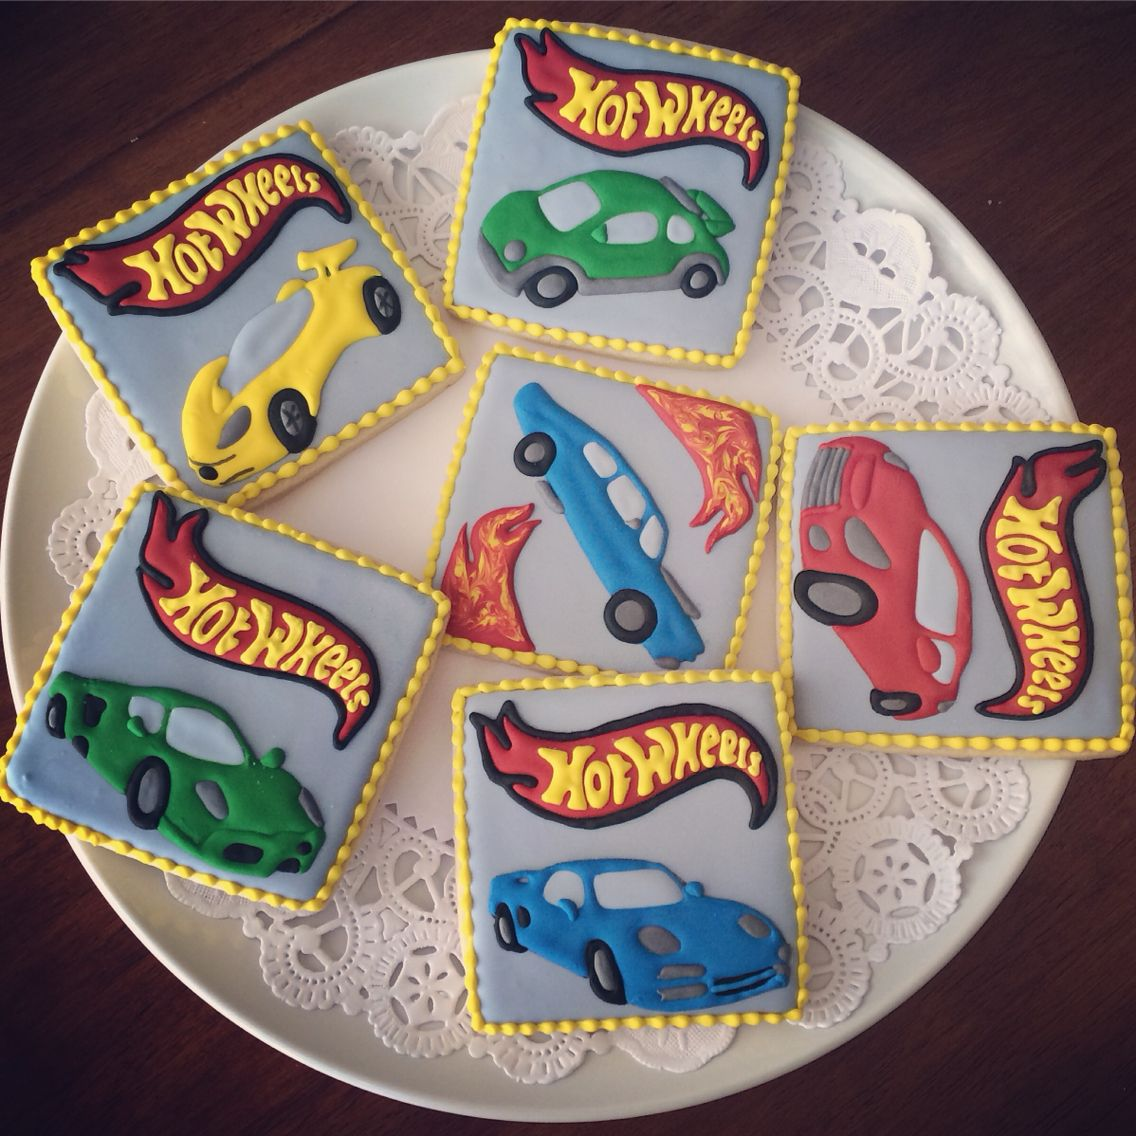 Cookie decorating party ideas - Hot Wheels Cookies By Sweets By Mee Boy Birthday Partiesthird Birthdaybirthday Party Ideascookie Decoratingdecorated